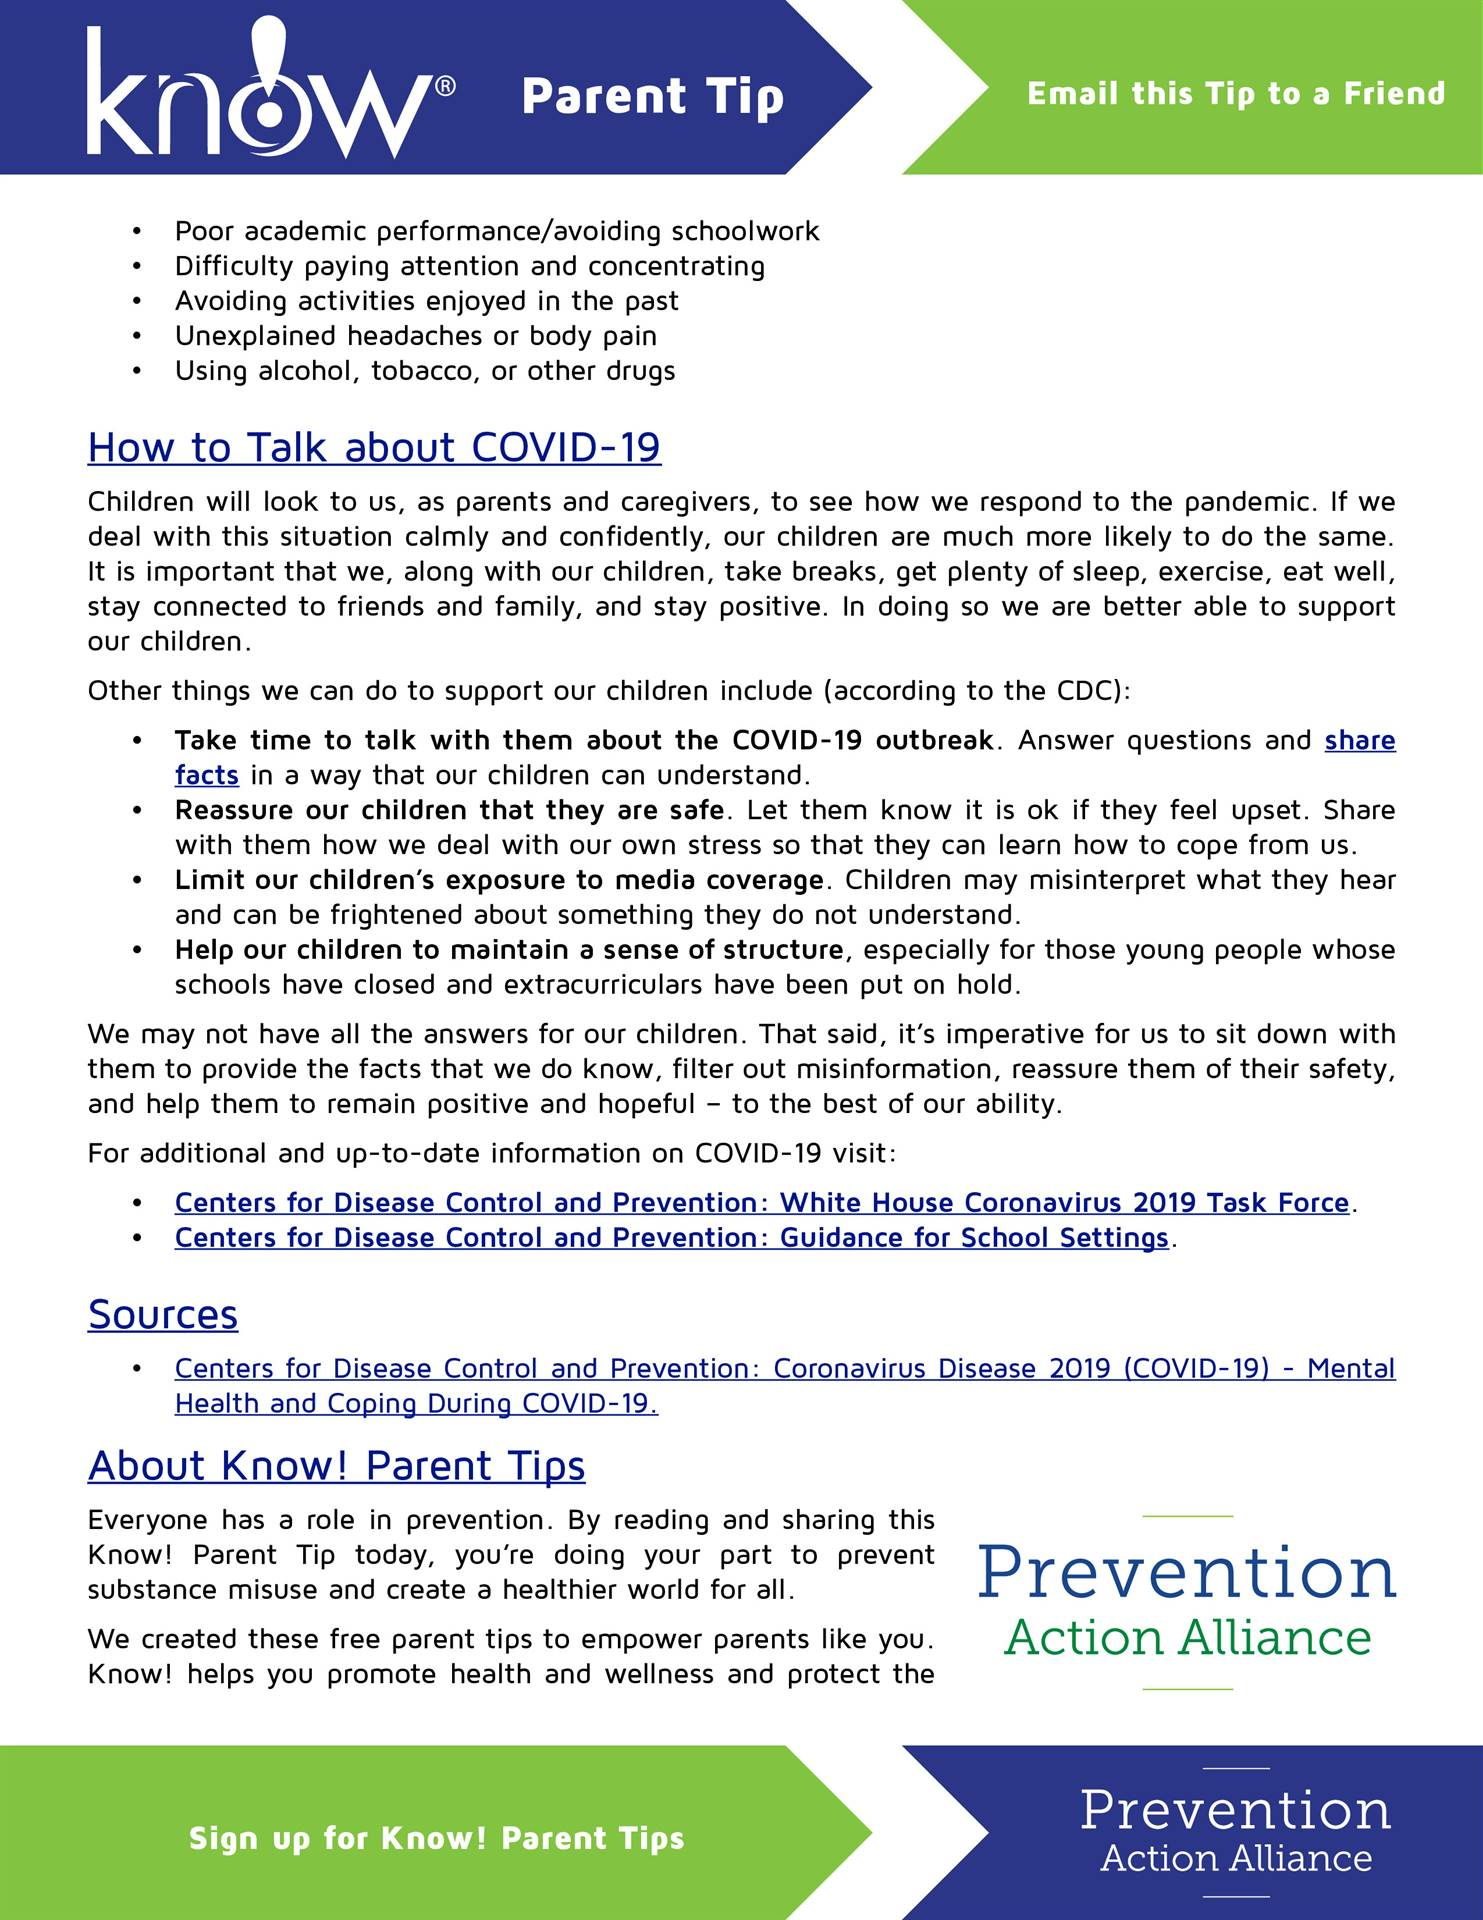 Know! To Reassure and Support Children During the COVID-19 Crisis